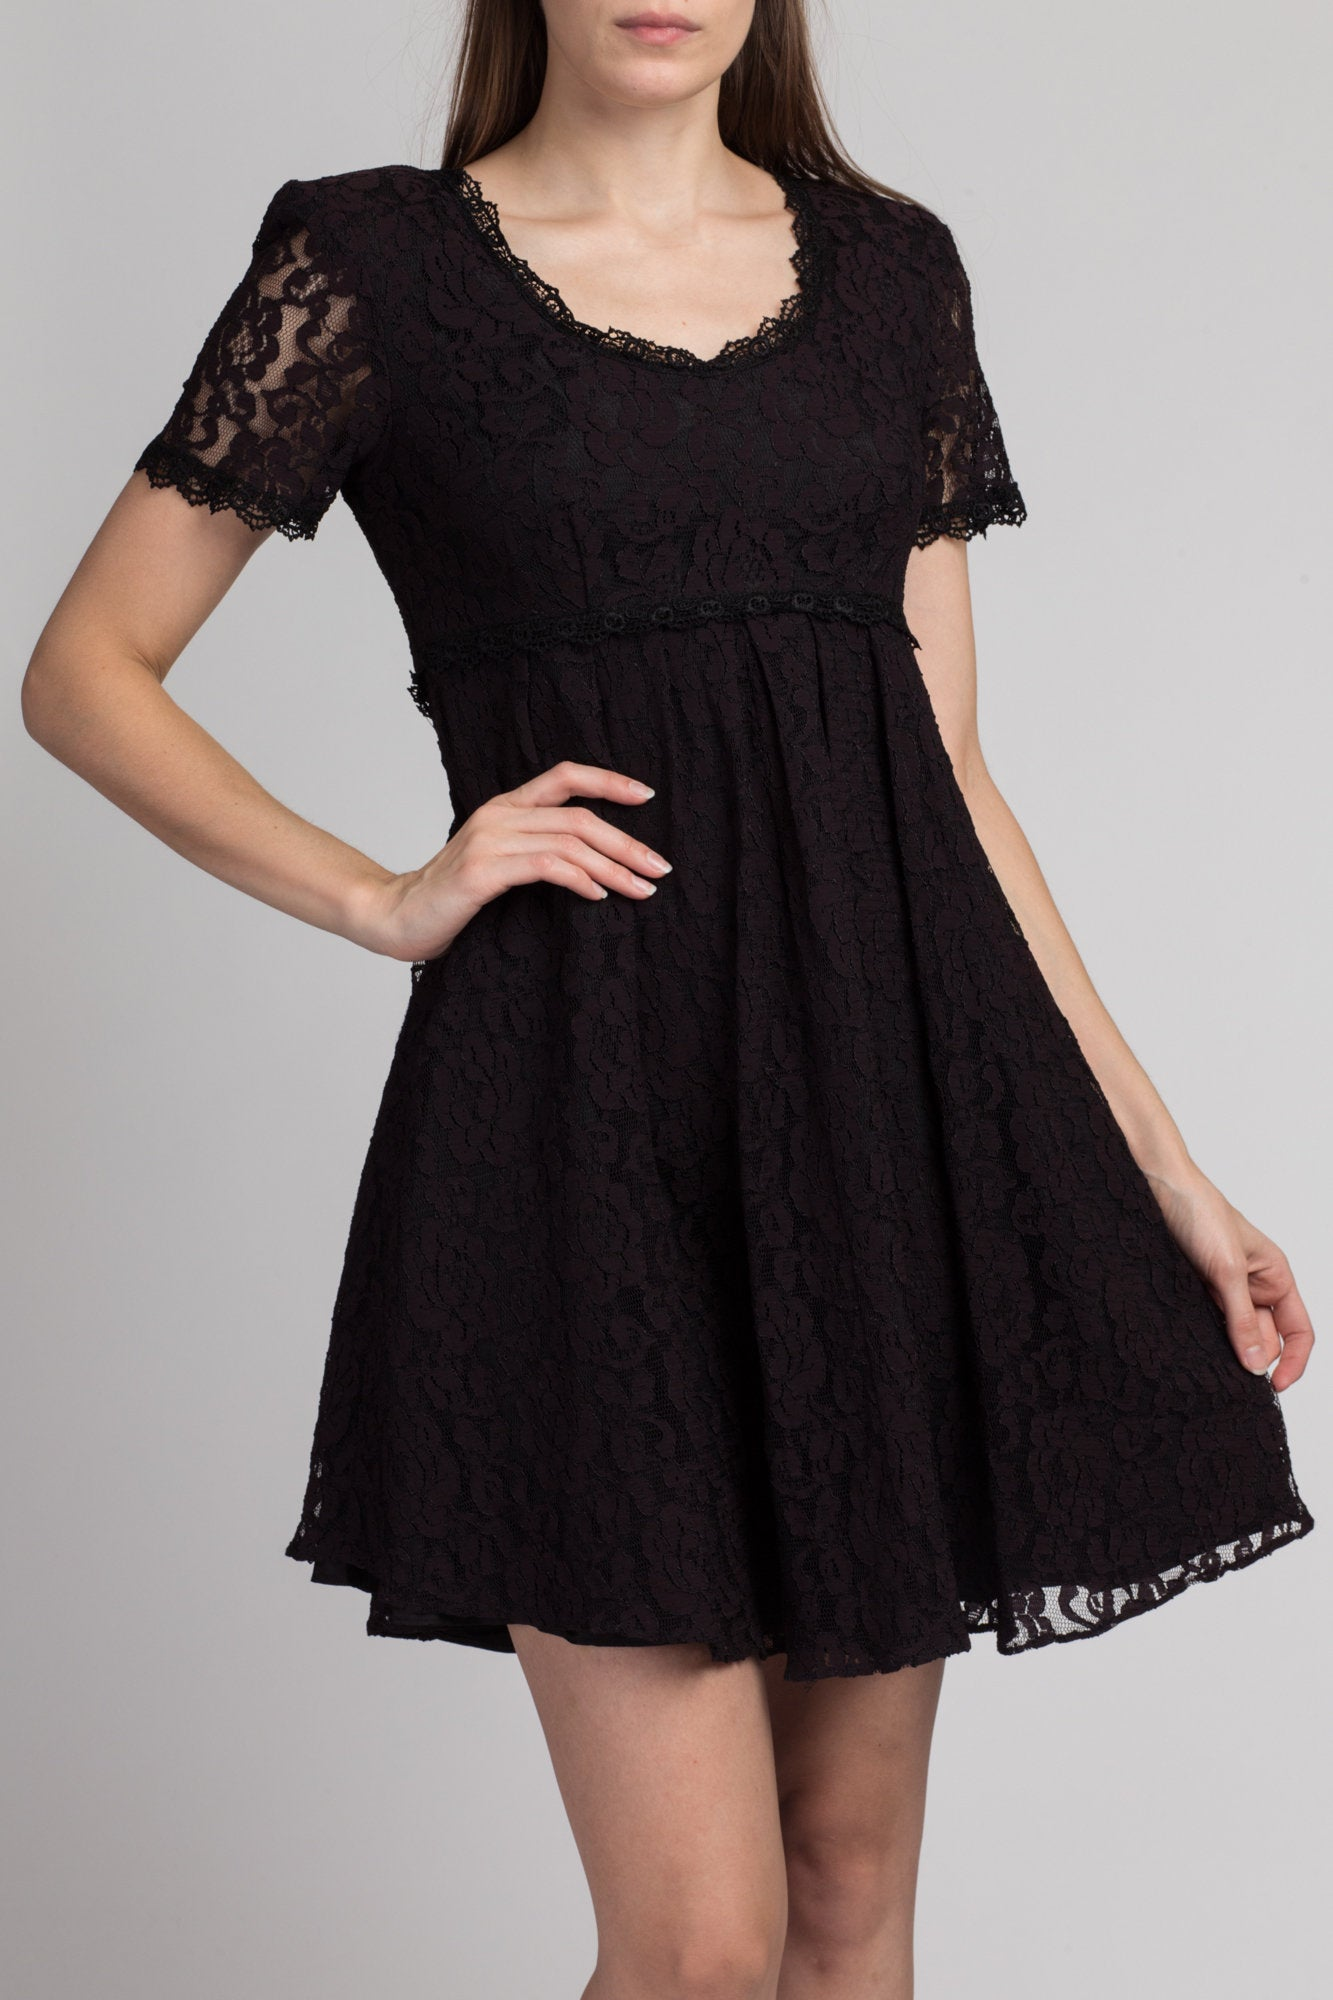 80s Black & Purple Lace Party Dress - Medium